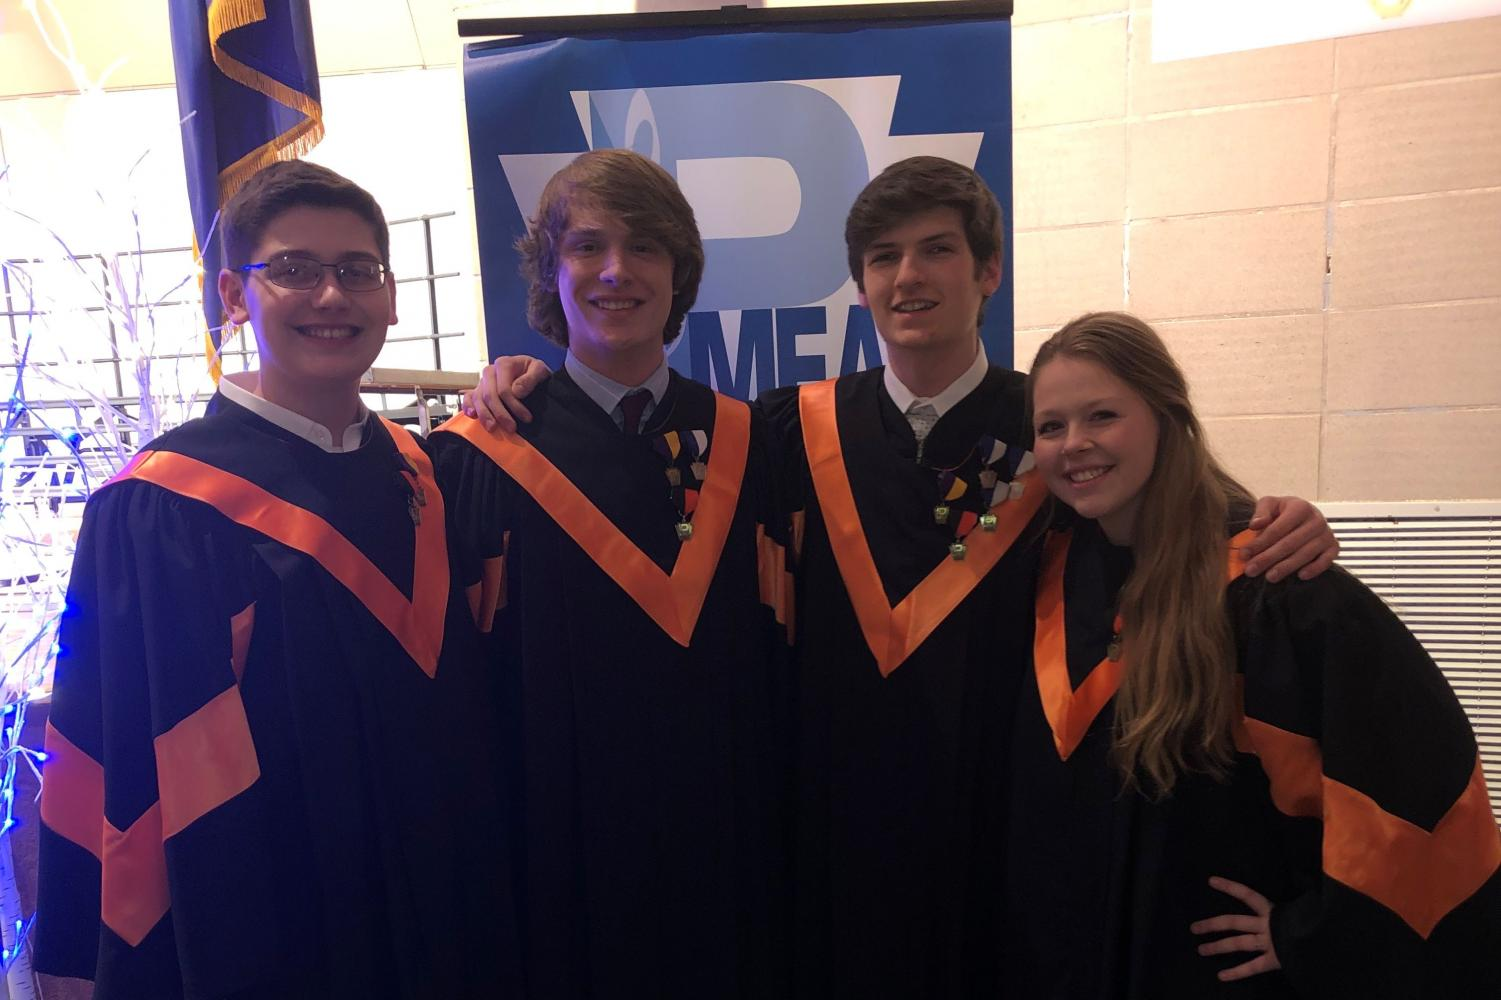 Four TAHS students who are moving on to Regional Chorus. Left to right: Tyler Beckwith, Brent McNeel, Ethan White, Lindsey Walk.